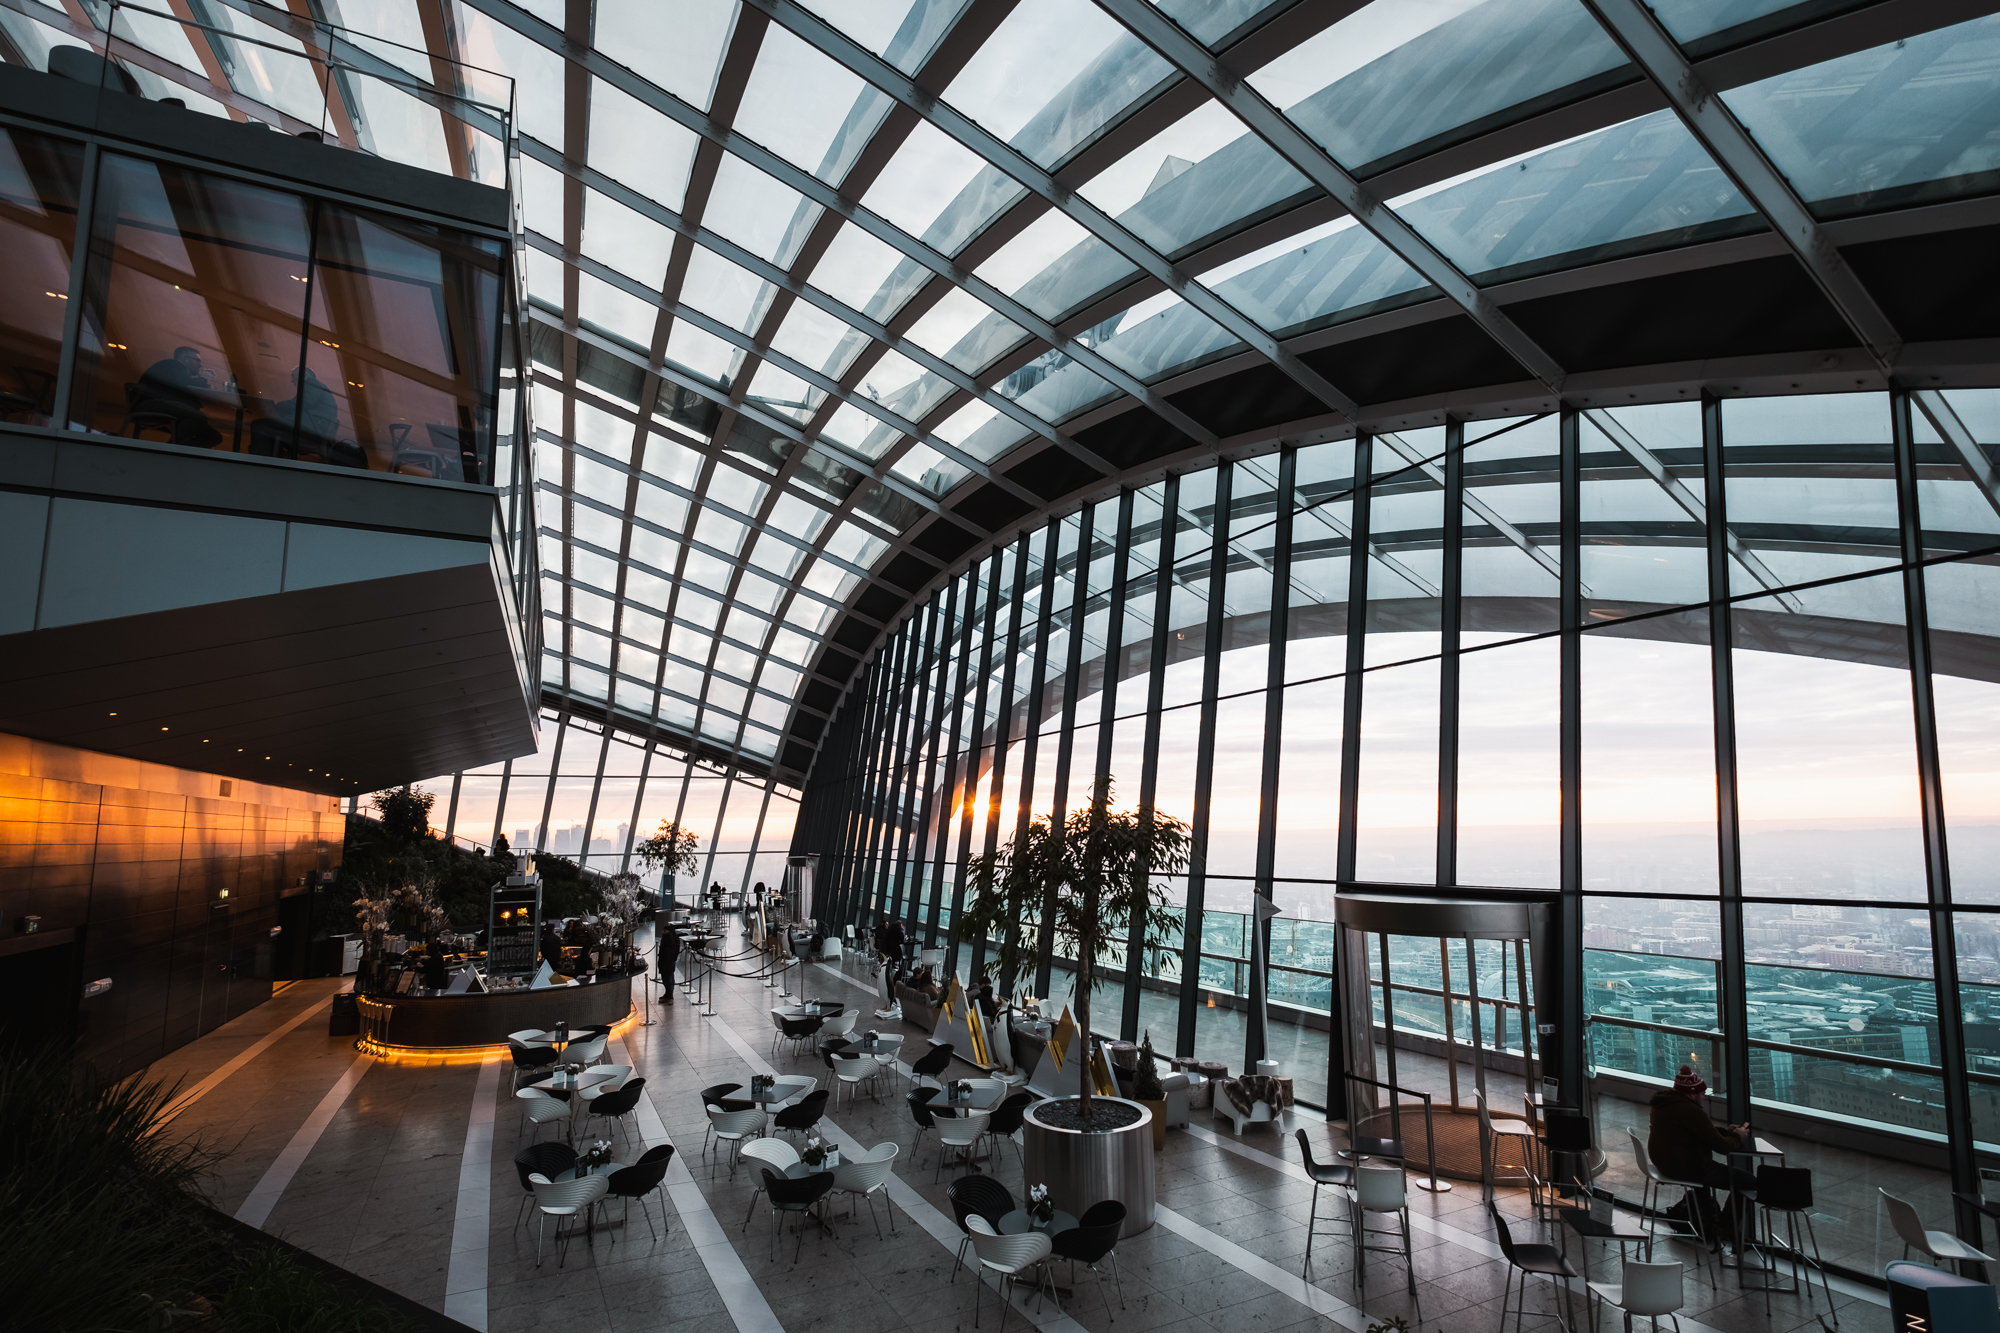 A photo of the Sky Garden's interior architecture taken by Trevor Sherwin